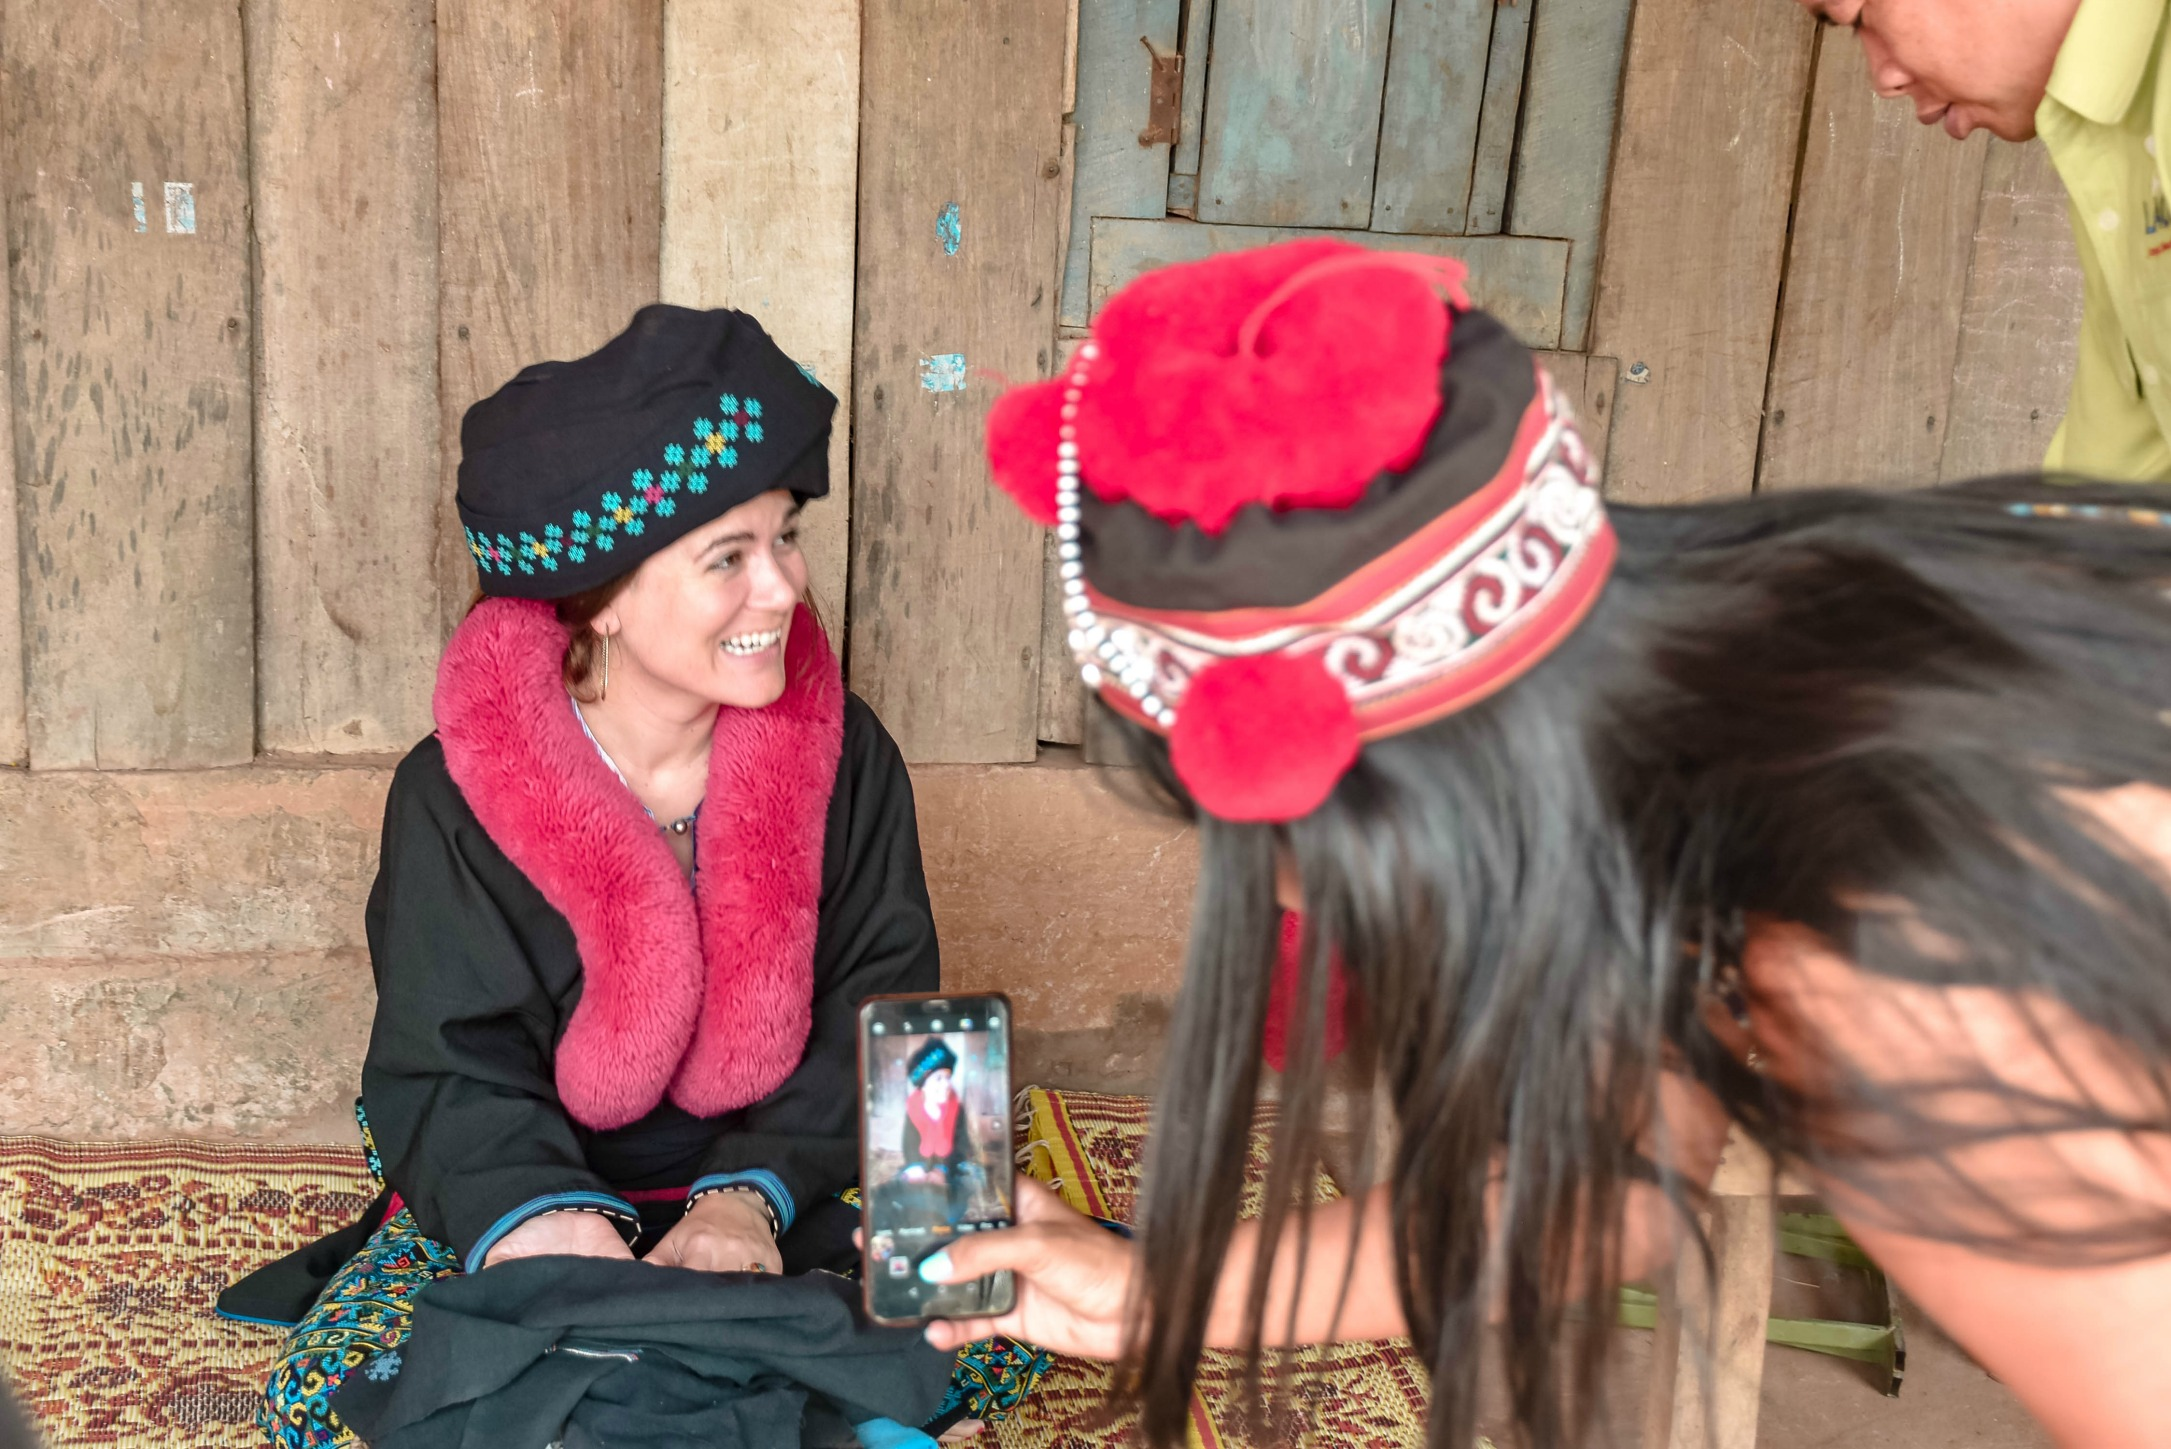 WEARING THE CULTURAL COSTUME OF THE YAO PEOPLE